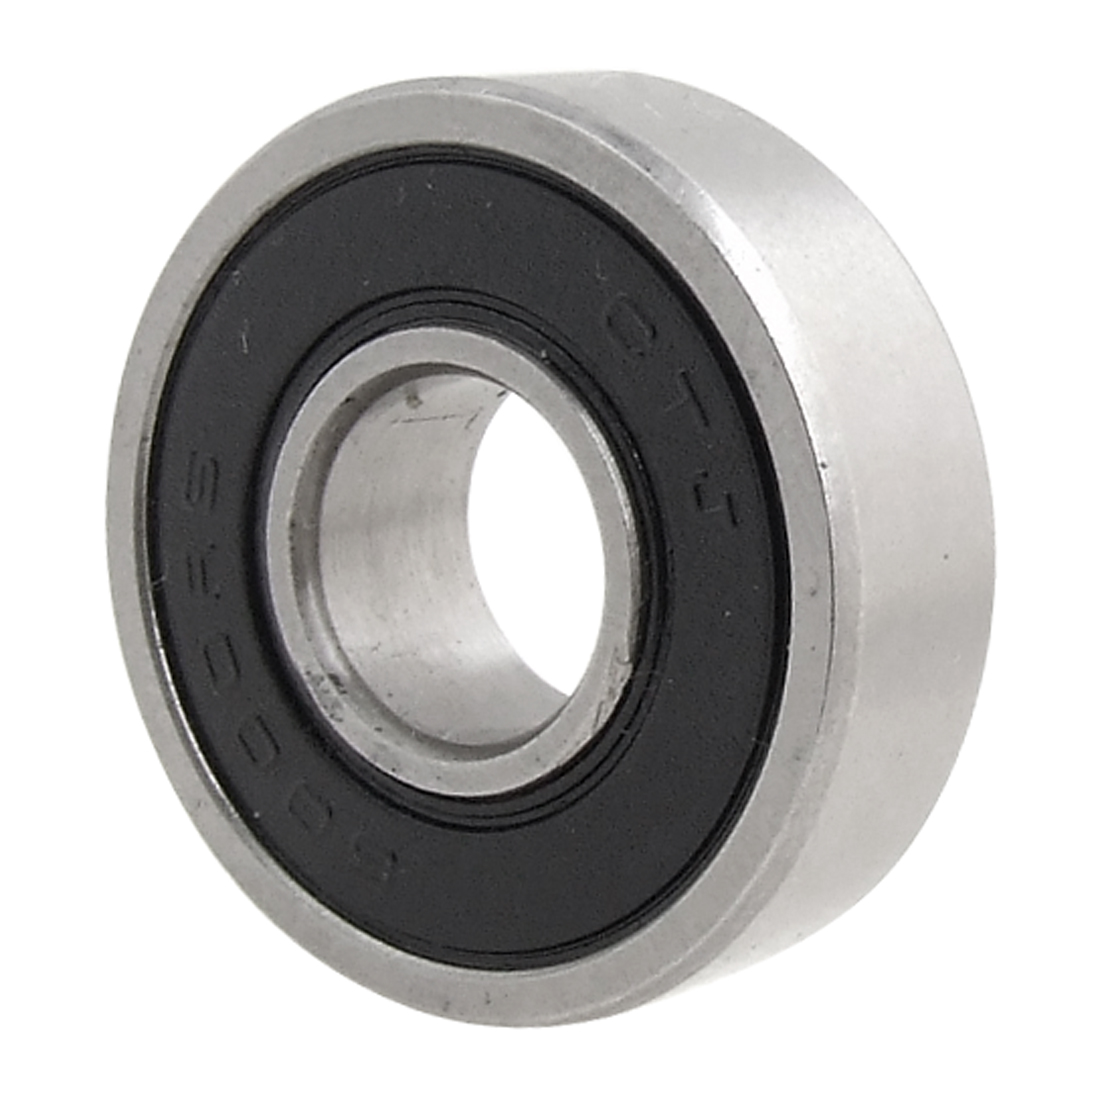 6000RS 10mm x 26mm x 8mm Rubber Seal Wheel Motor Ball Bearing